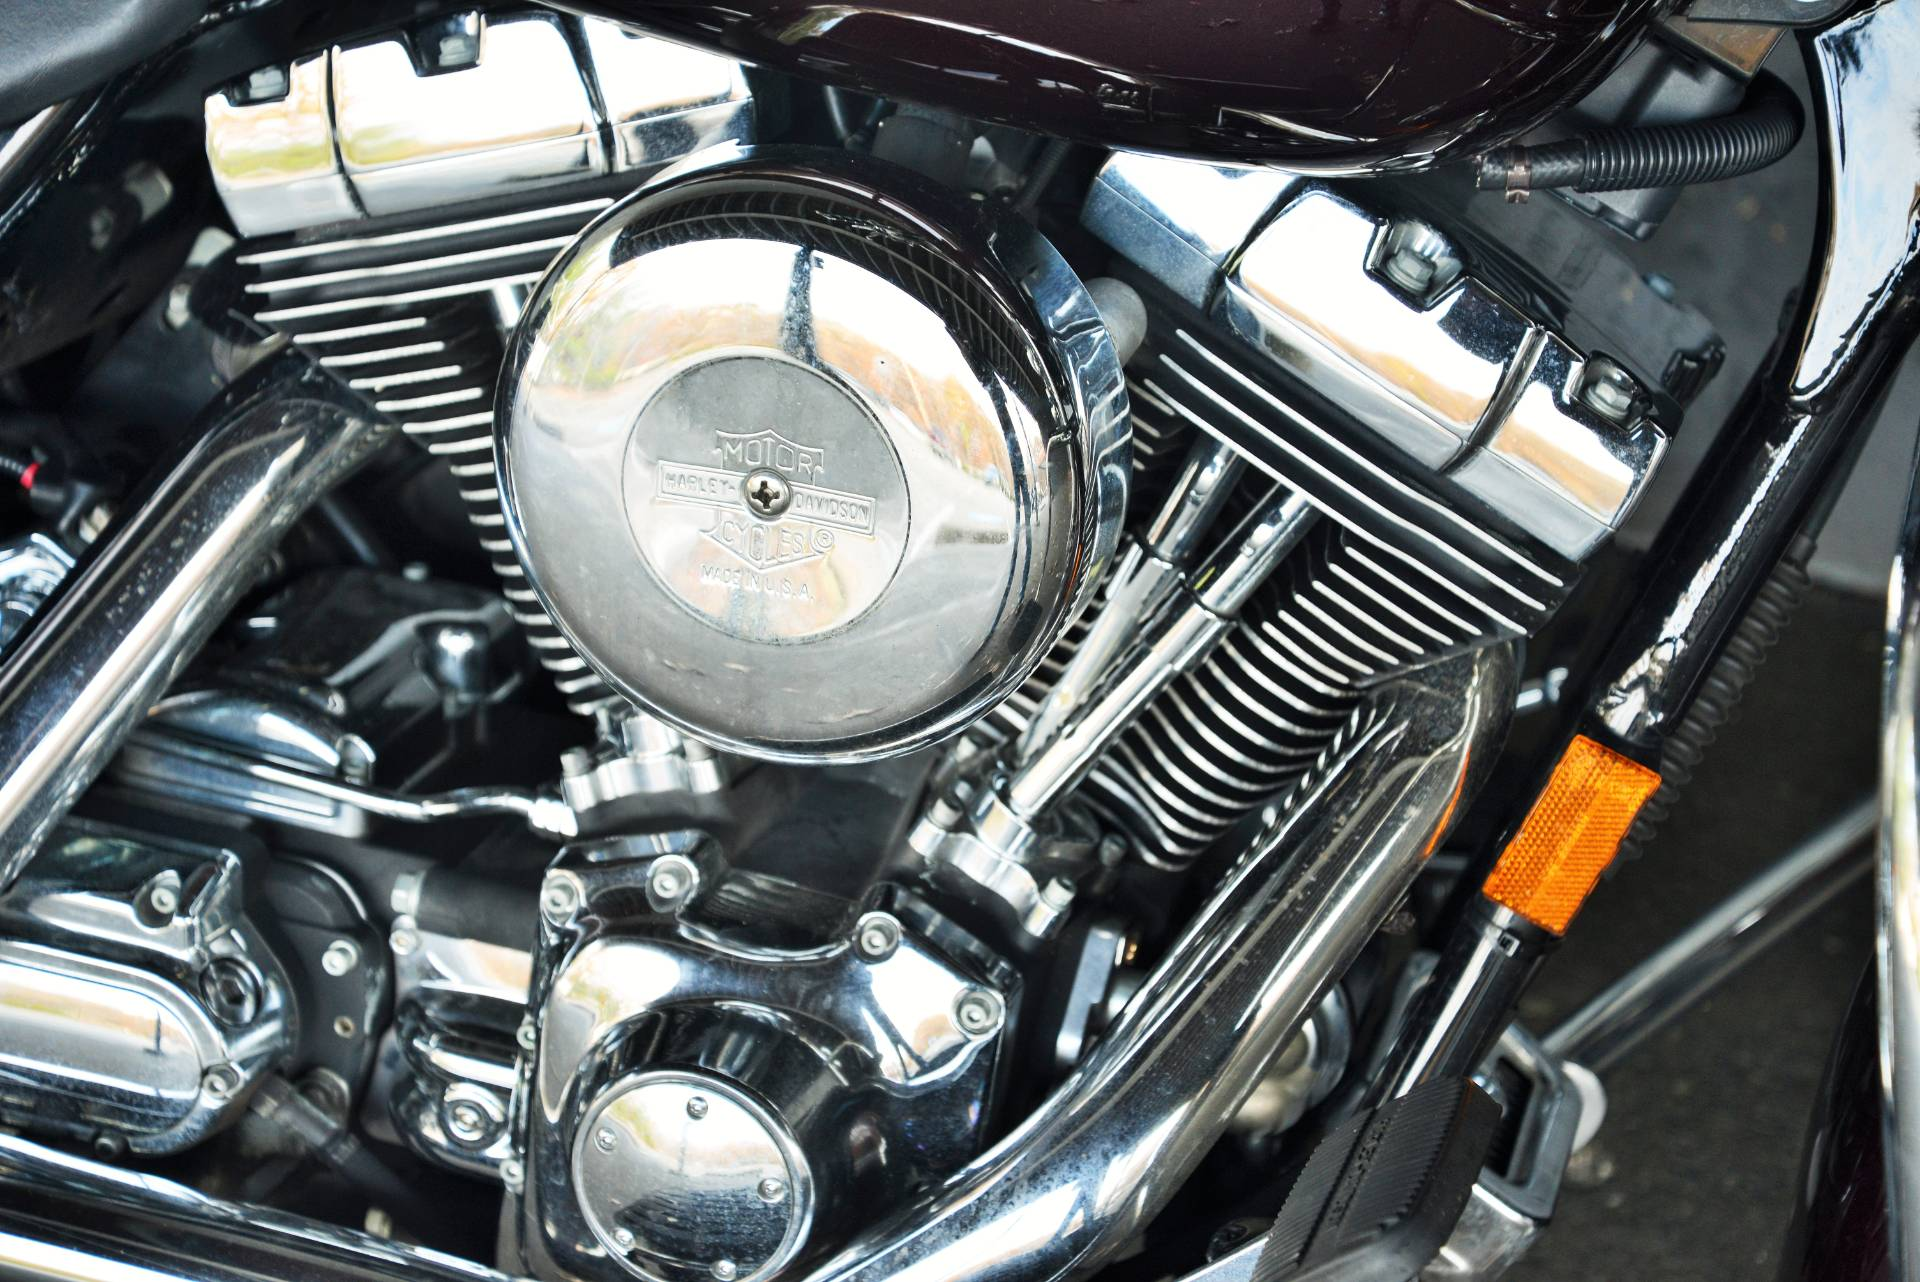 2005 Harley-Davidson ROAD KING in Lakewood, New Jersey - Photo 7